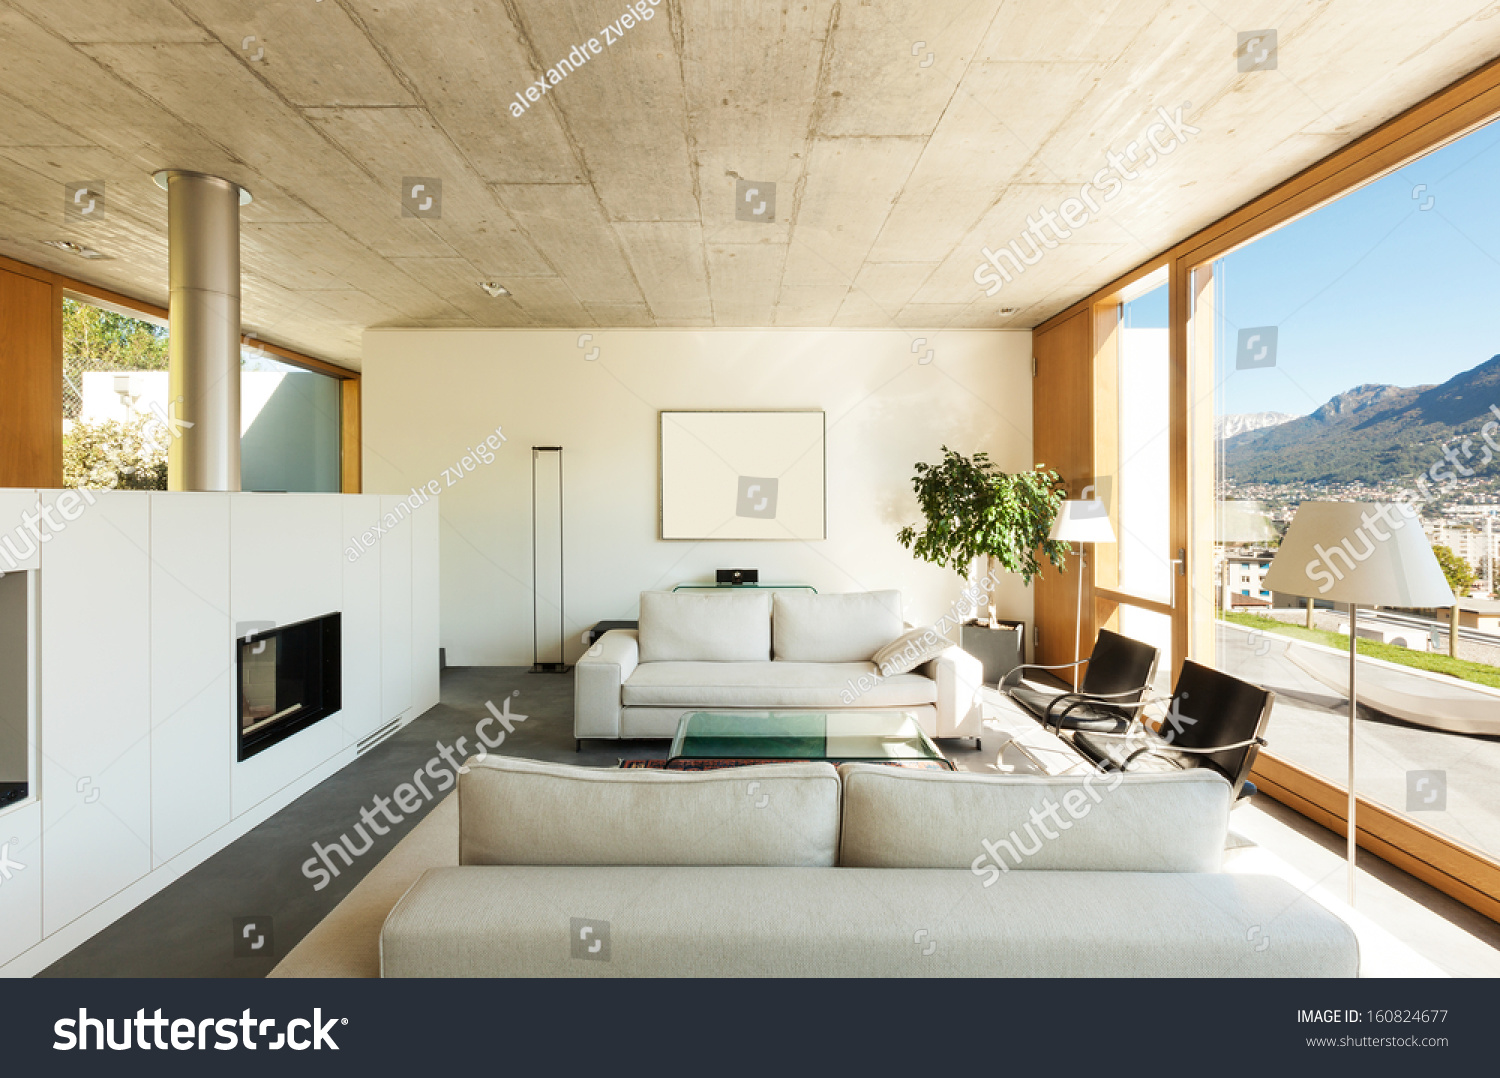 Beautiful modern house cement interiors view stock photo 160824677 shutterstock - Modern intiror room ...